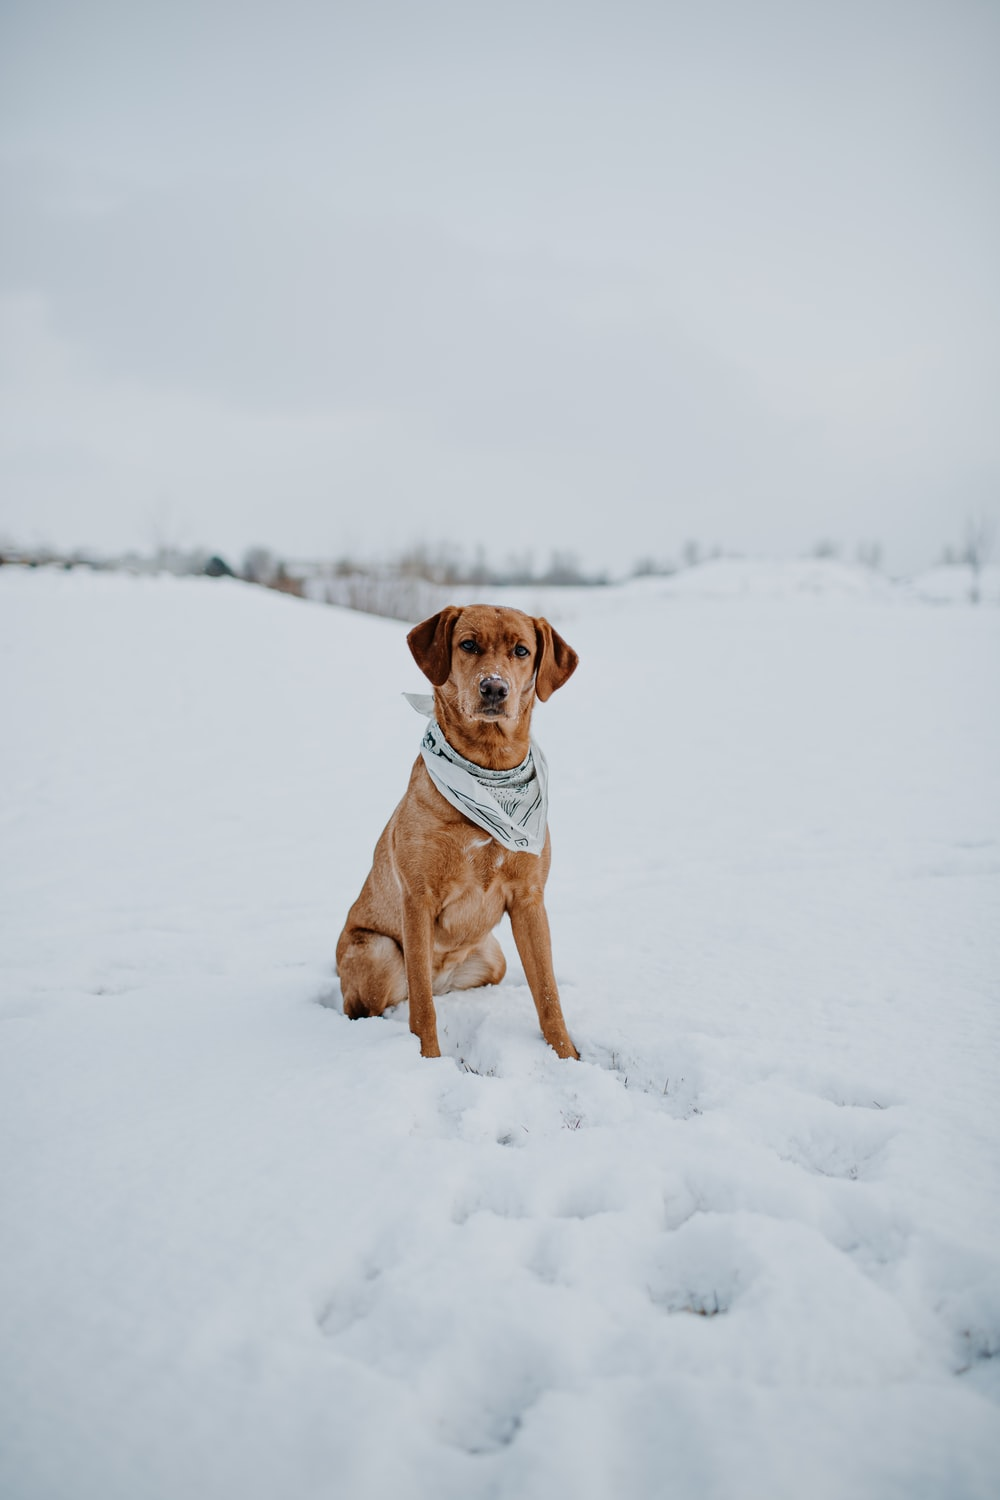 brown short coated dog sitting on snow covered ground during daytime